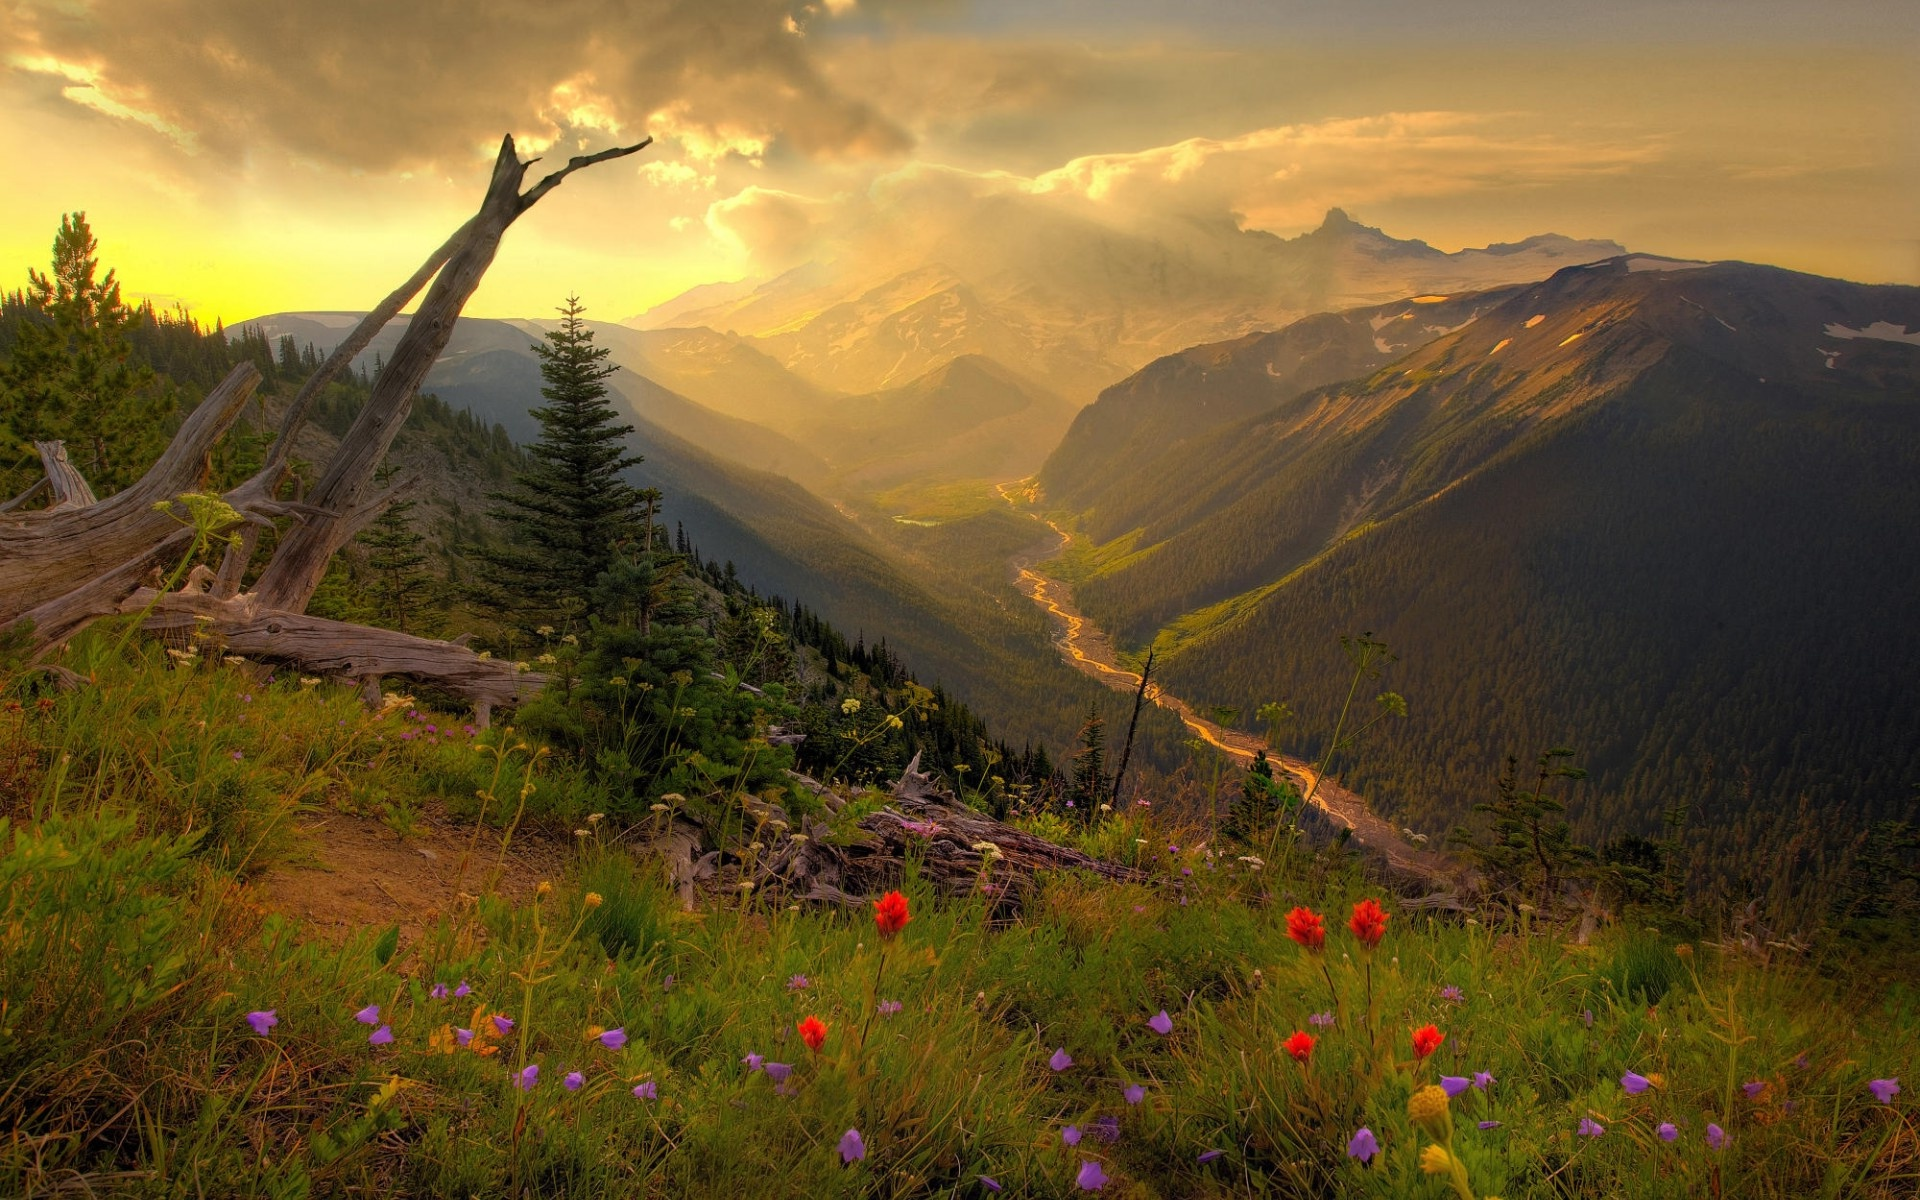 Valley Landscape 29202 1920x1200 px. Category: Landscape Resolution: 1920x1200px. Filesize: 648.87 KB. Beautiful Washington Wallpaper 10944